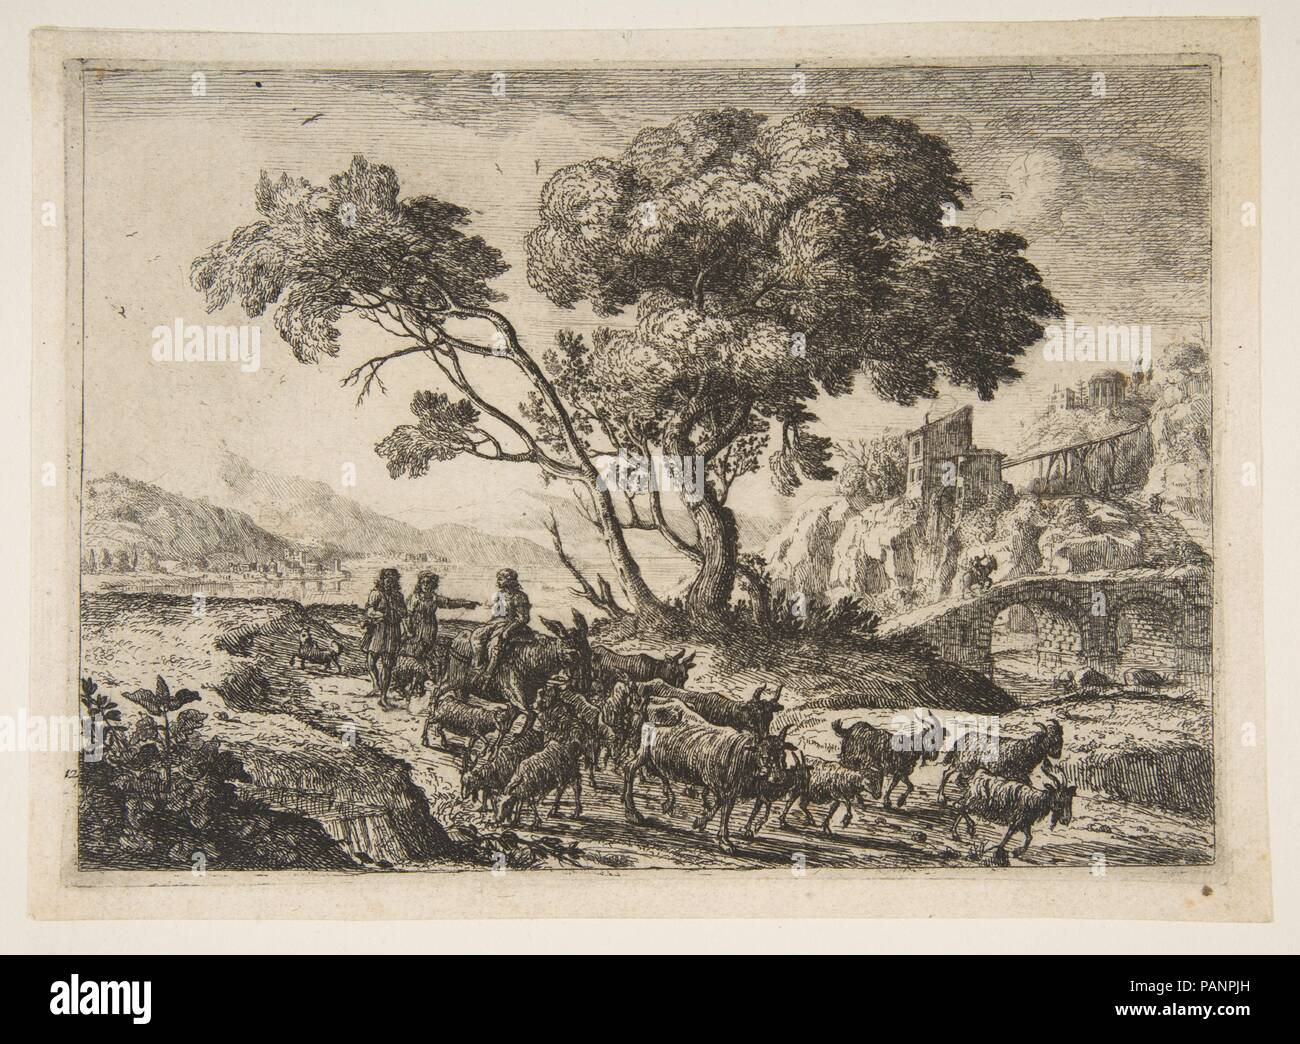 Departure for the Fields. Artist: Claude Lorrain (Claude Gellée) (French, Chamagne 1604/5?-1682 Rome). Dimensions: sheet: 5 1/2 x 7 5/8 in. (14 x 19.3 cm)  plate: 5 1/16 x 7 3/16 in. (12.8 x 18.2 cm). Date: ca. 1638-41. Museum: Metropolitan Museum of Art, New York, USA. - Stock Image